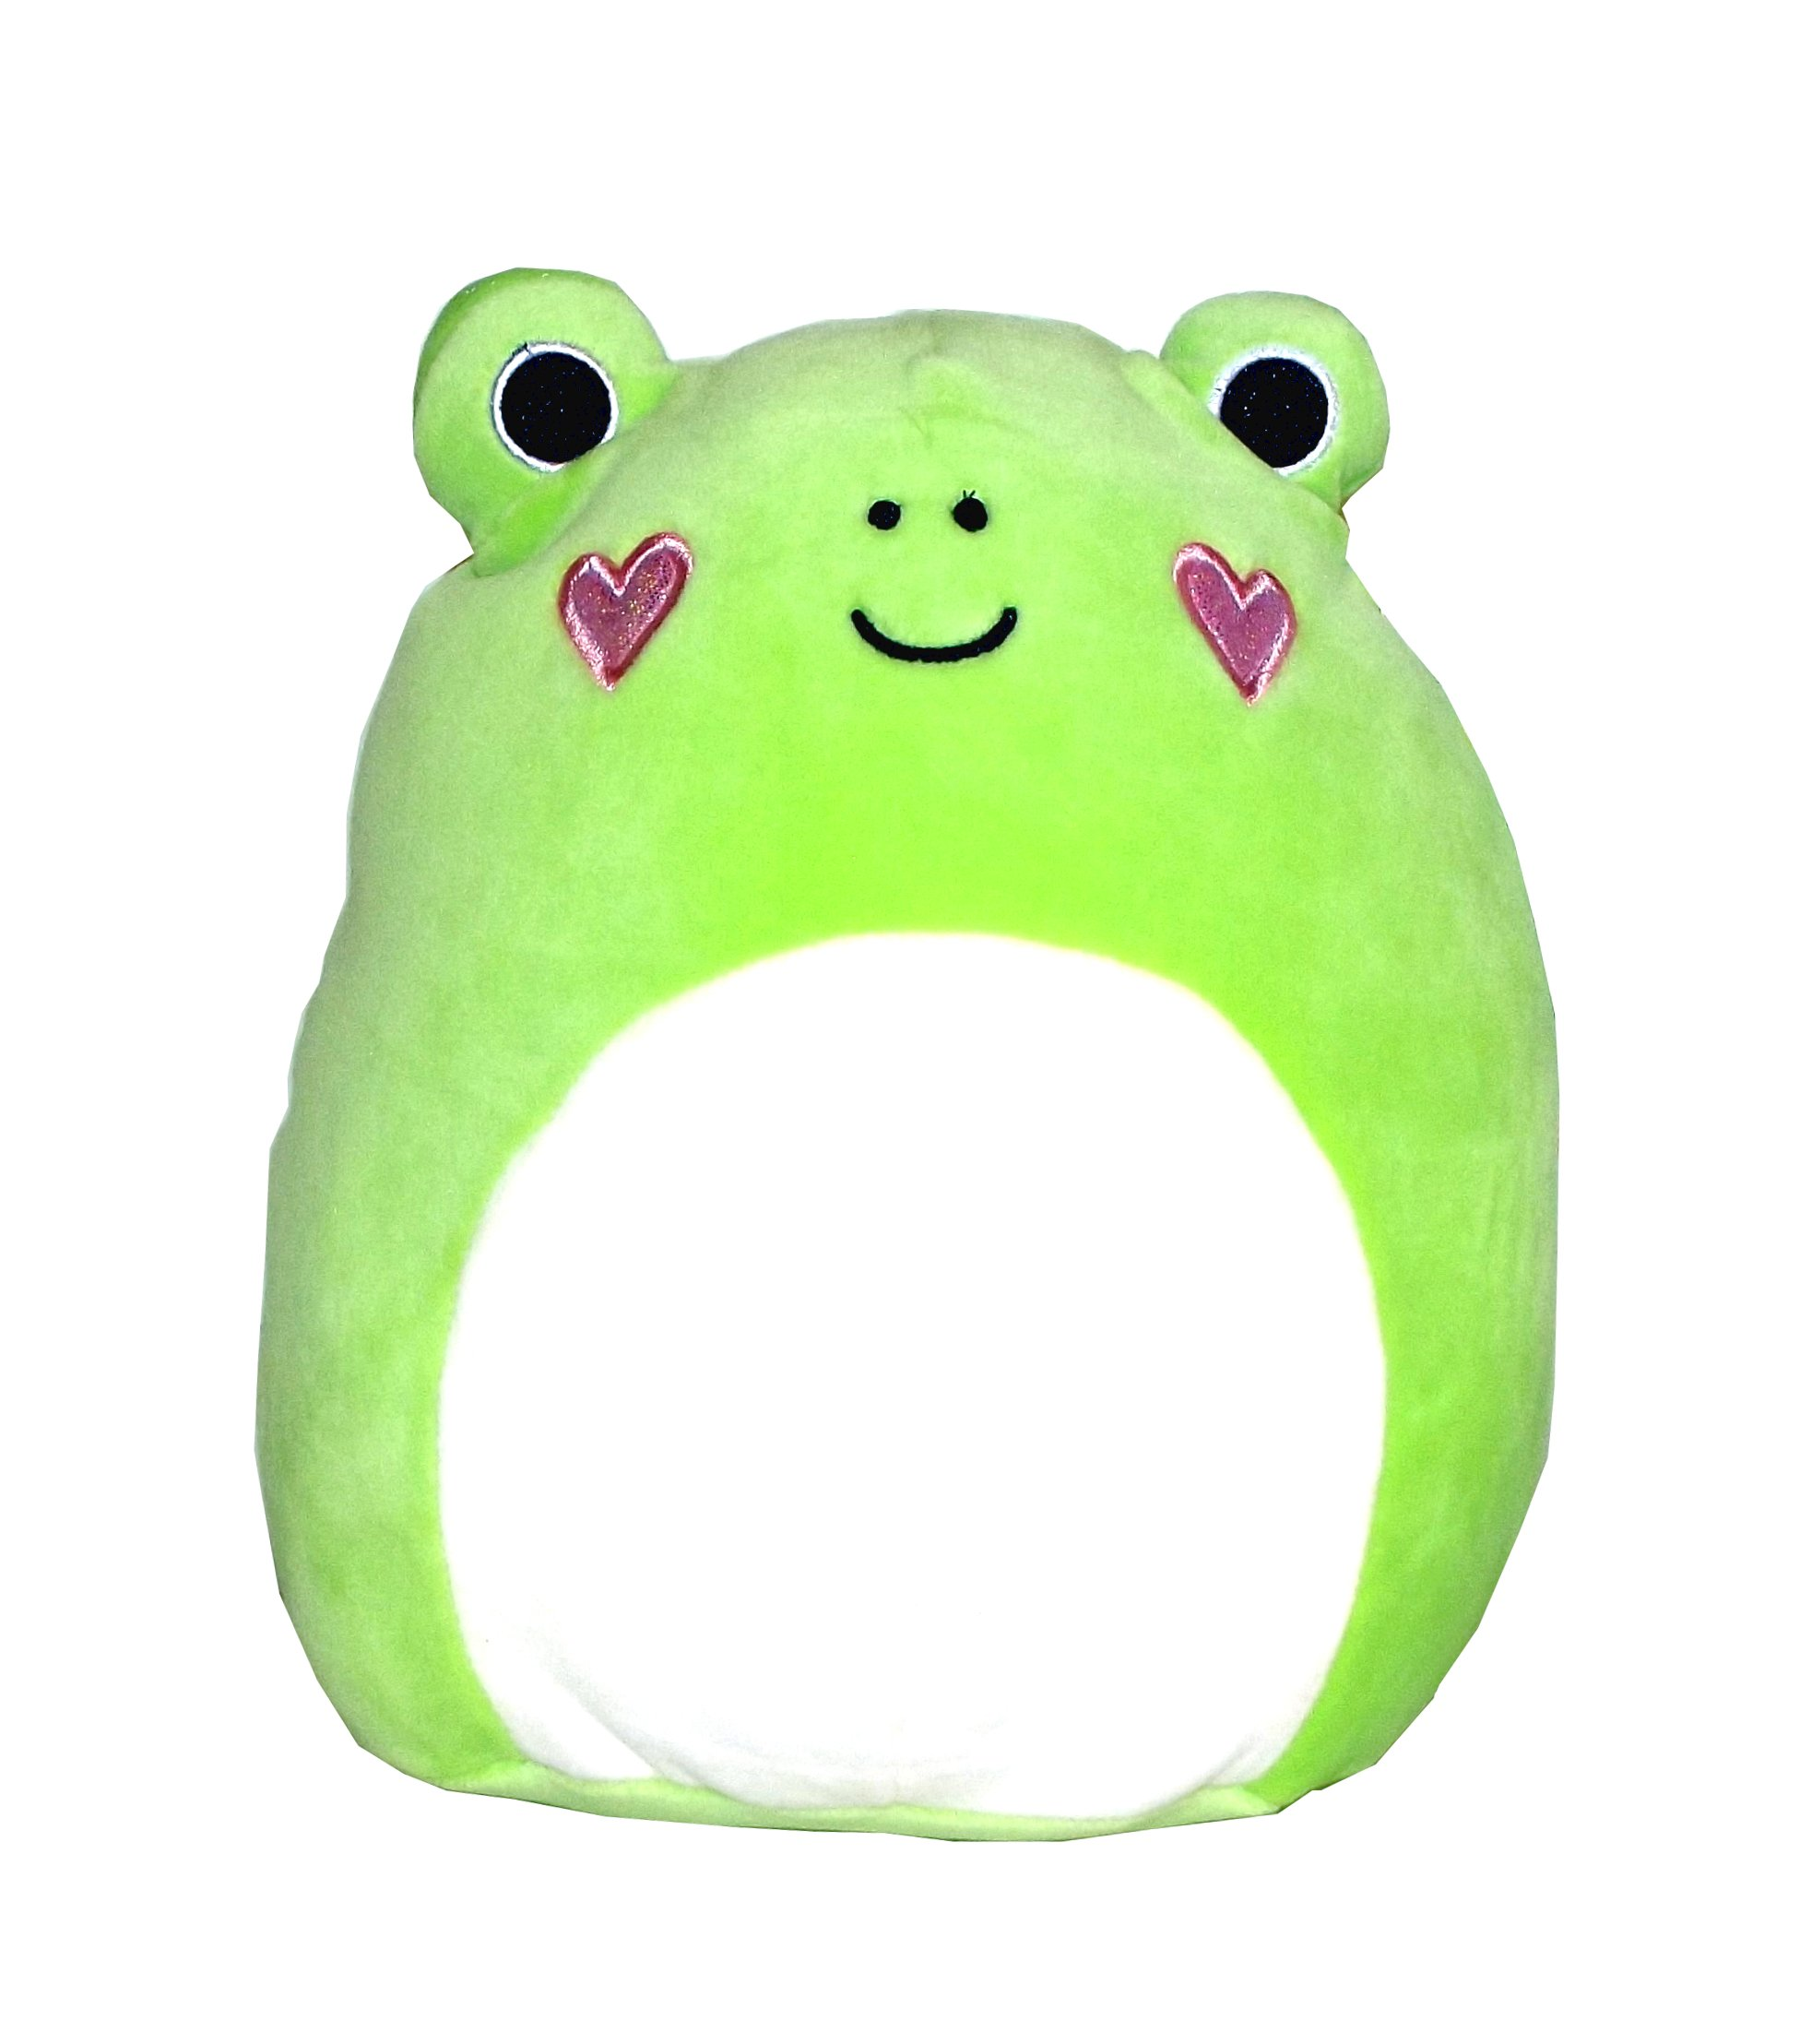 Kellytoy Squishmallows Valentine's Day Themed Pillow Plush Toy (Frog, 9 inches)